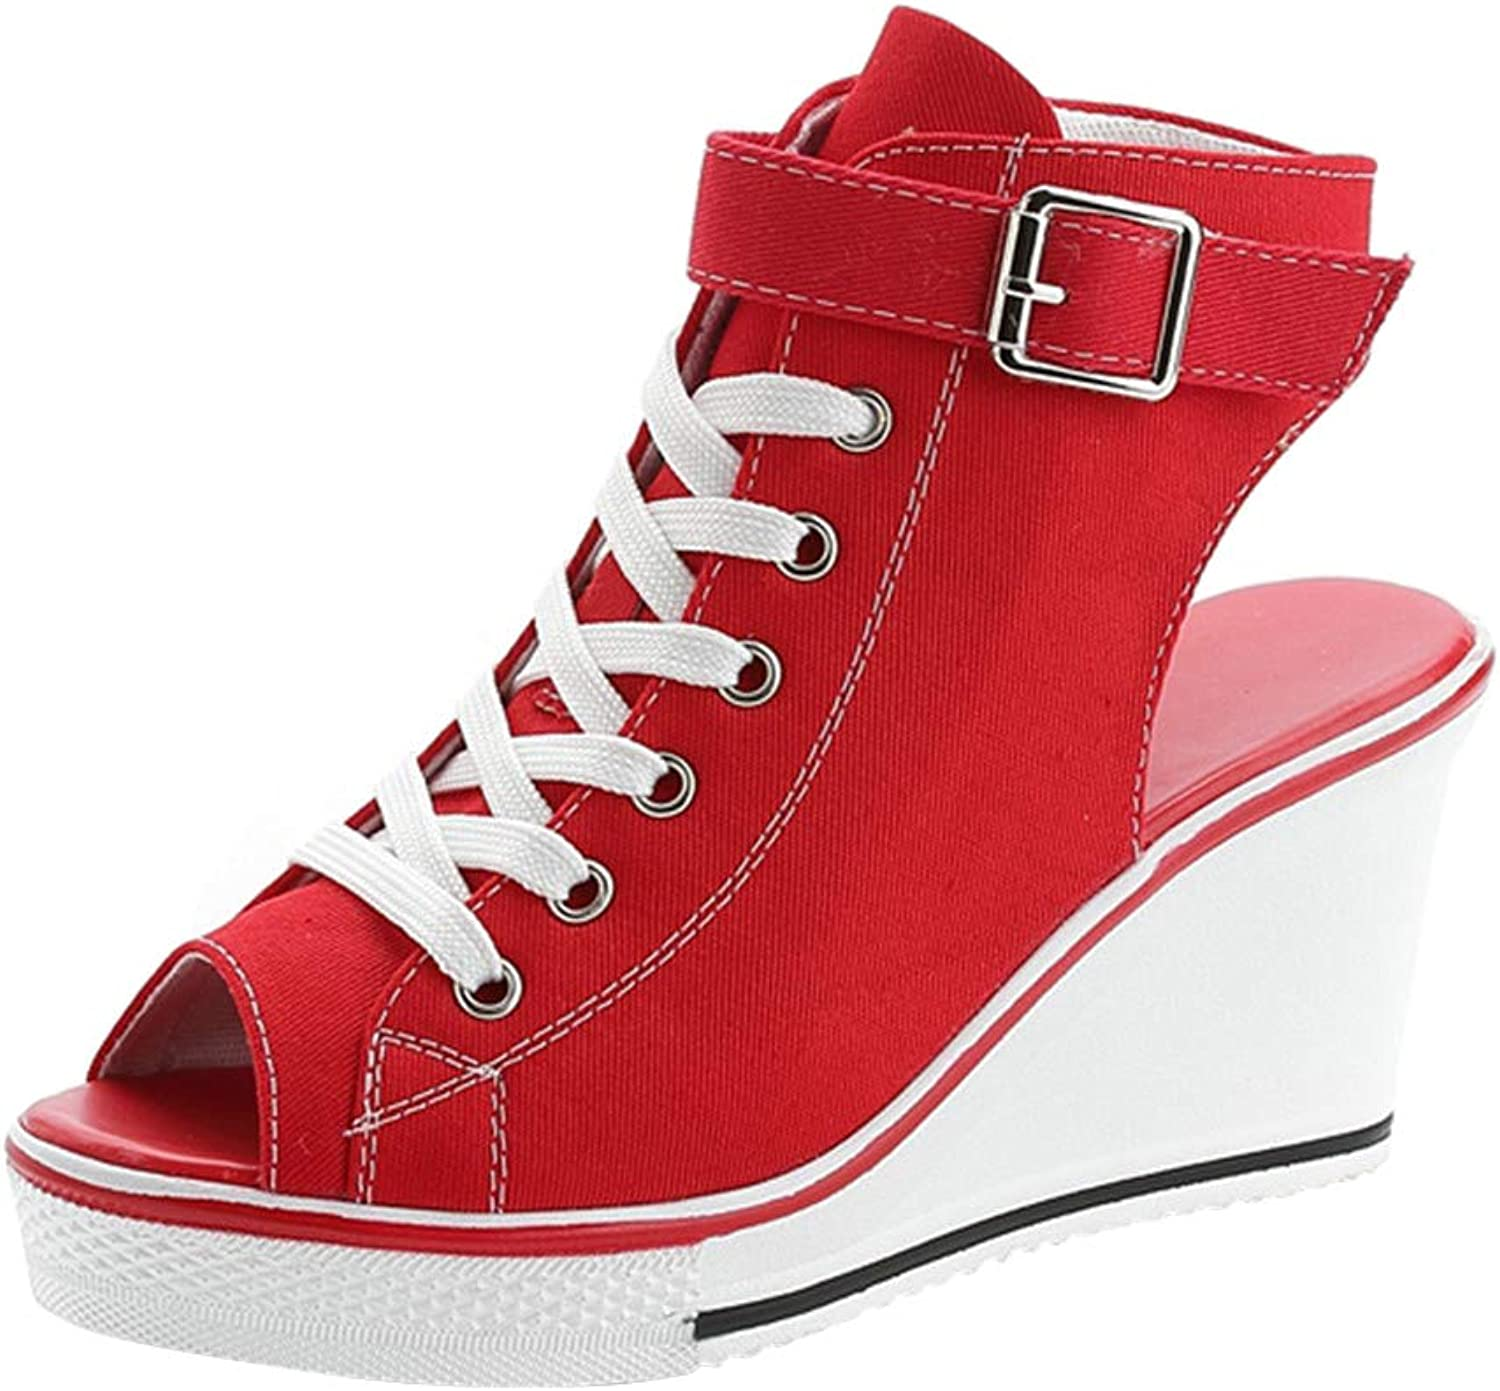 ACE SHOCK High-Heeled Wedges Sneakers Women, Fashion Lace-up Platform Canvas Sandals shoes 2 Kinds 4 colors